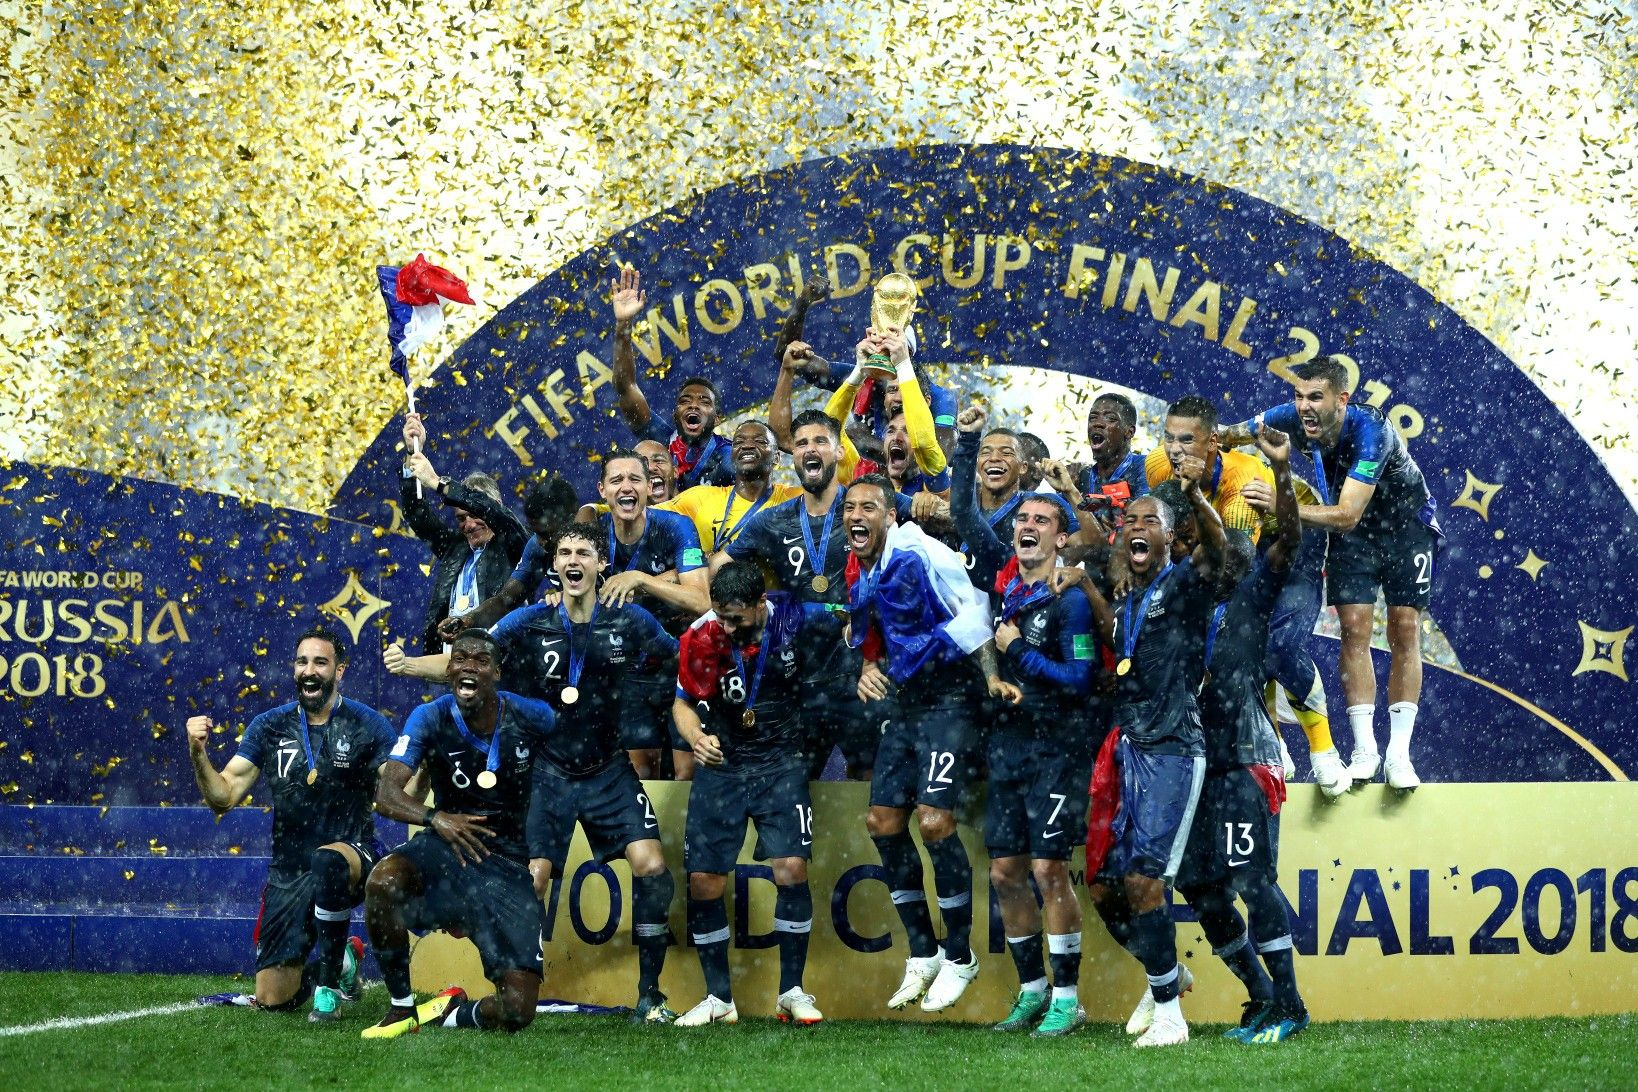 newest innovative design new appearance FIFA World Cup Final Russia 2018 Champion is France ...